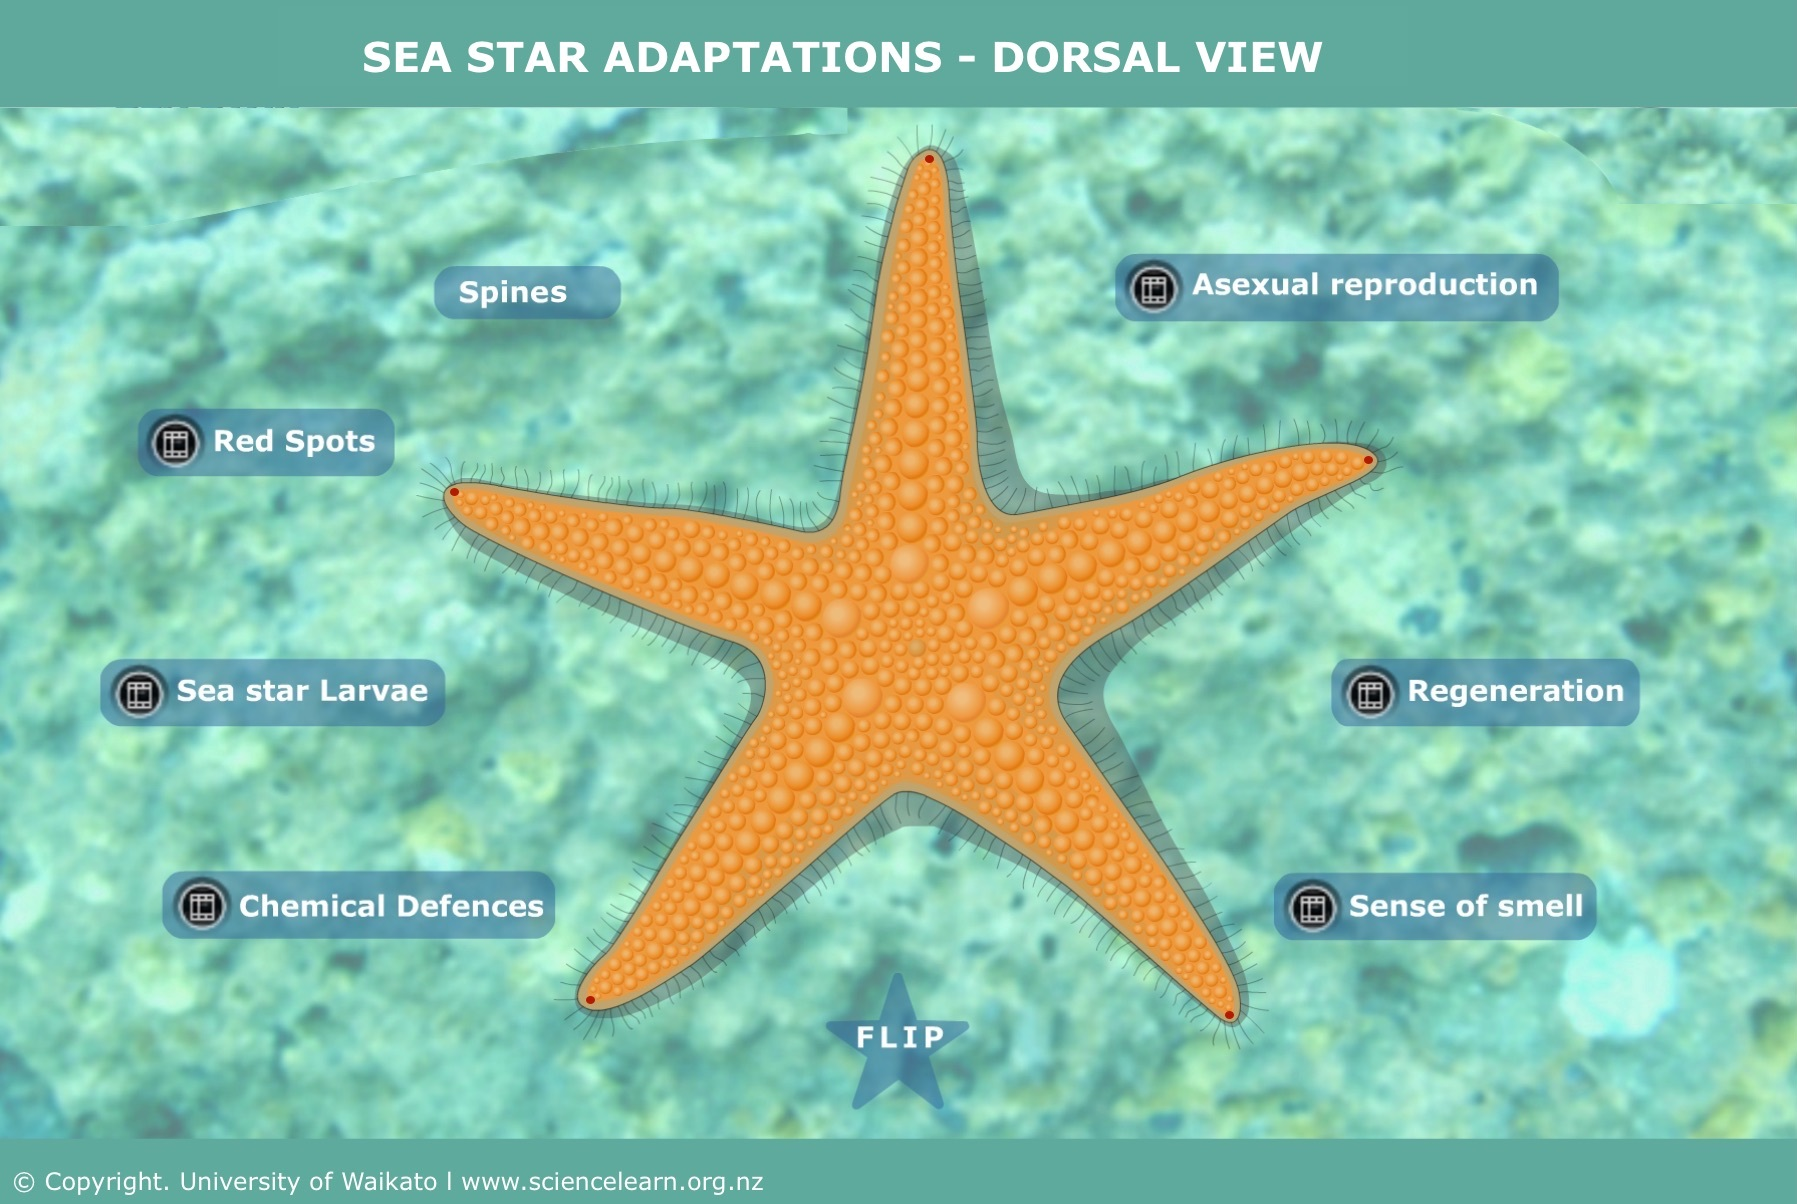 hight resolution of sea star adaptations dorsal view